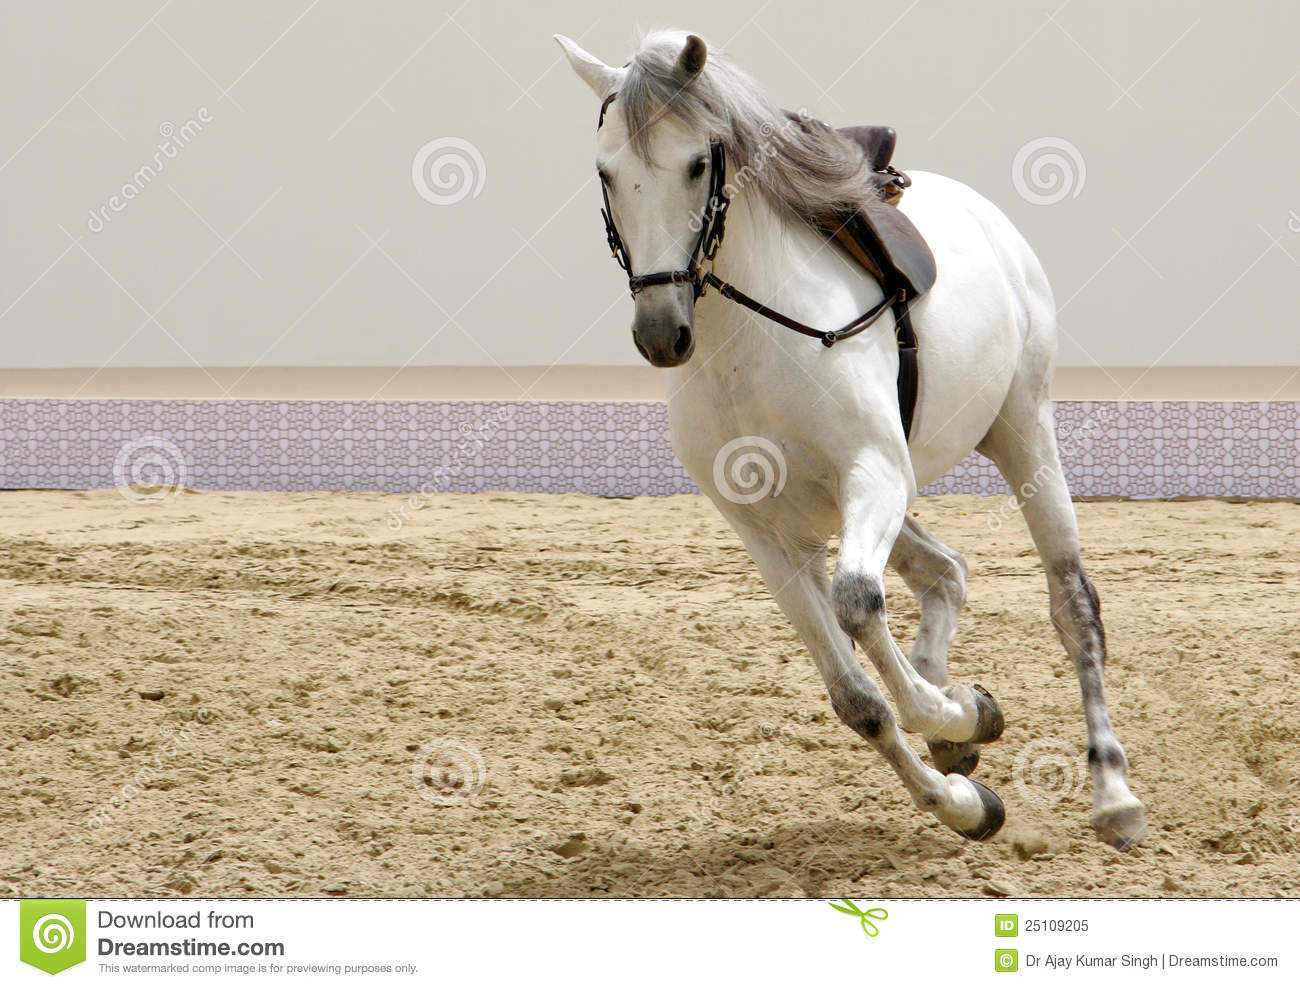 A Beautiful White Horse Galloping On Sand Stock Image ...